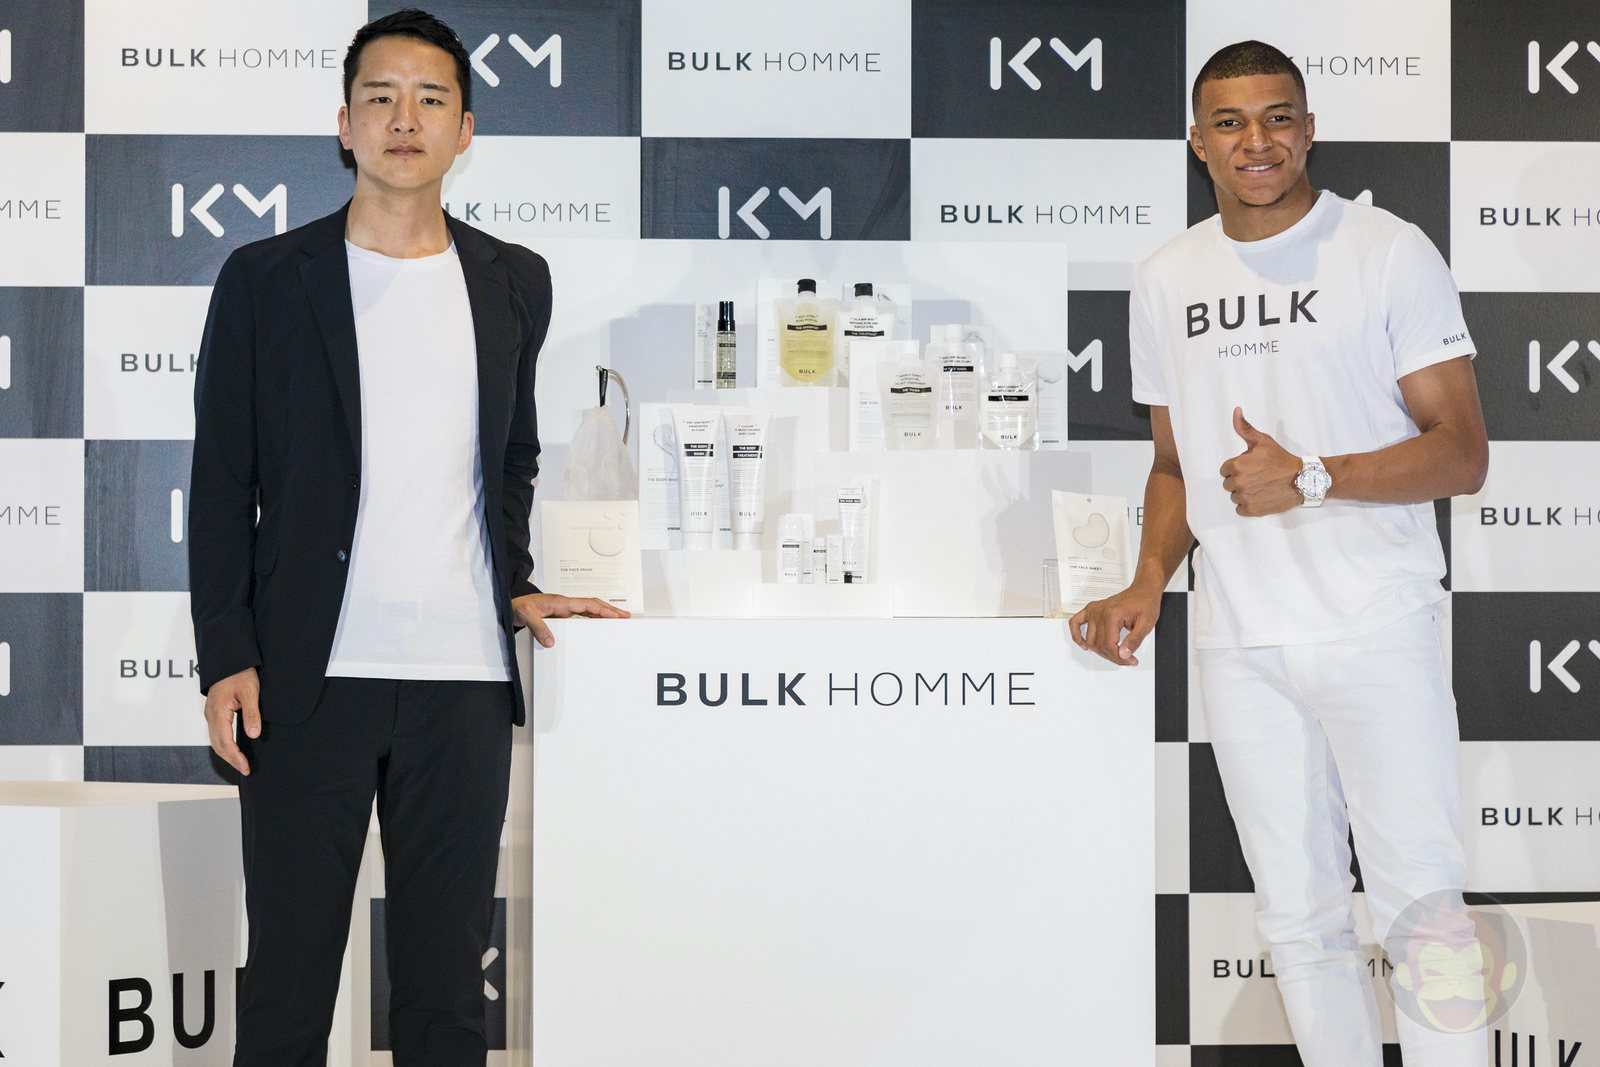 BULK HOMME Pop Up Store 19